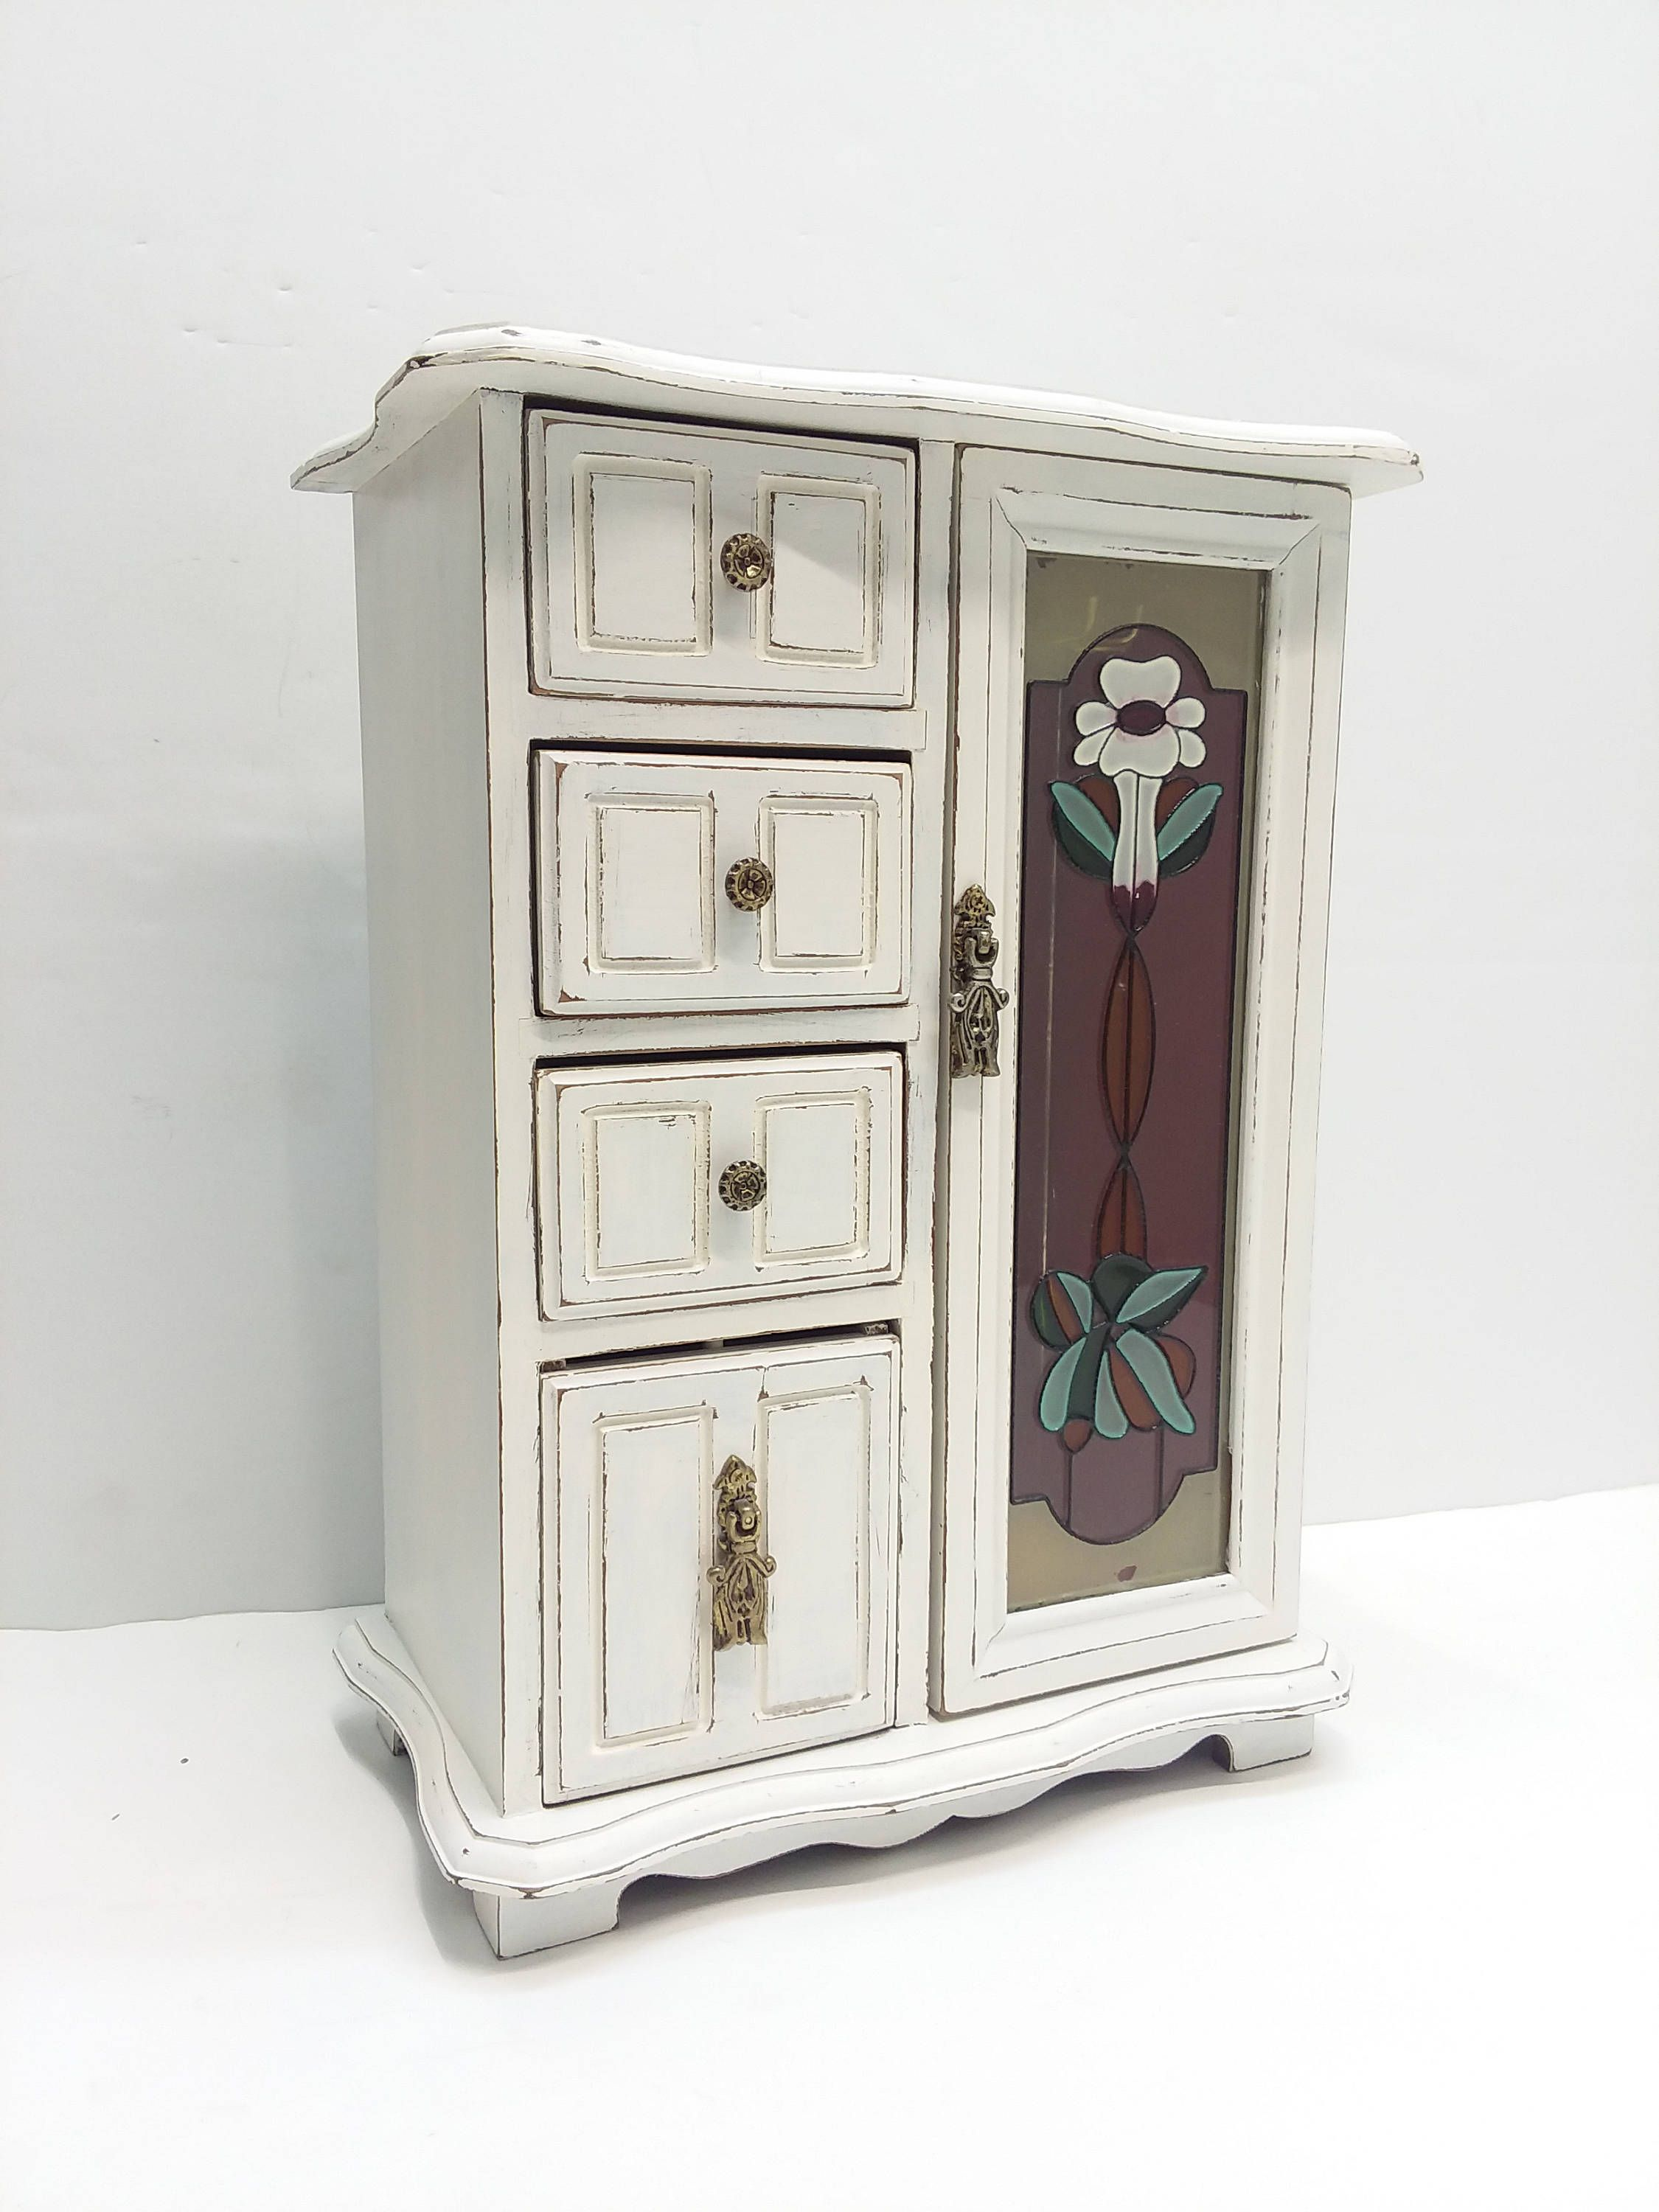 Rustic Jewelry Armoire Large Shabby Chic Vintage Wooden Jewelry Armoire Painted Antique